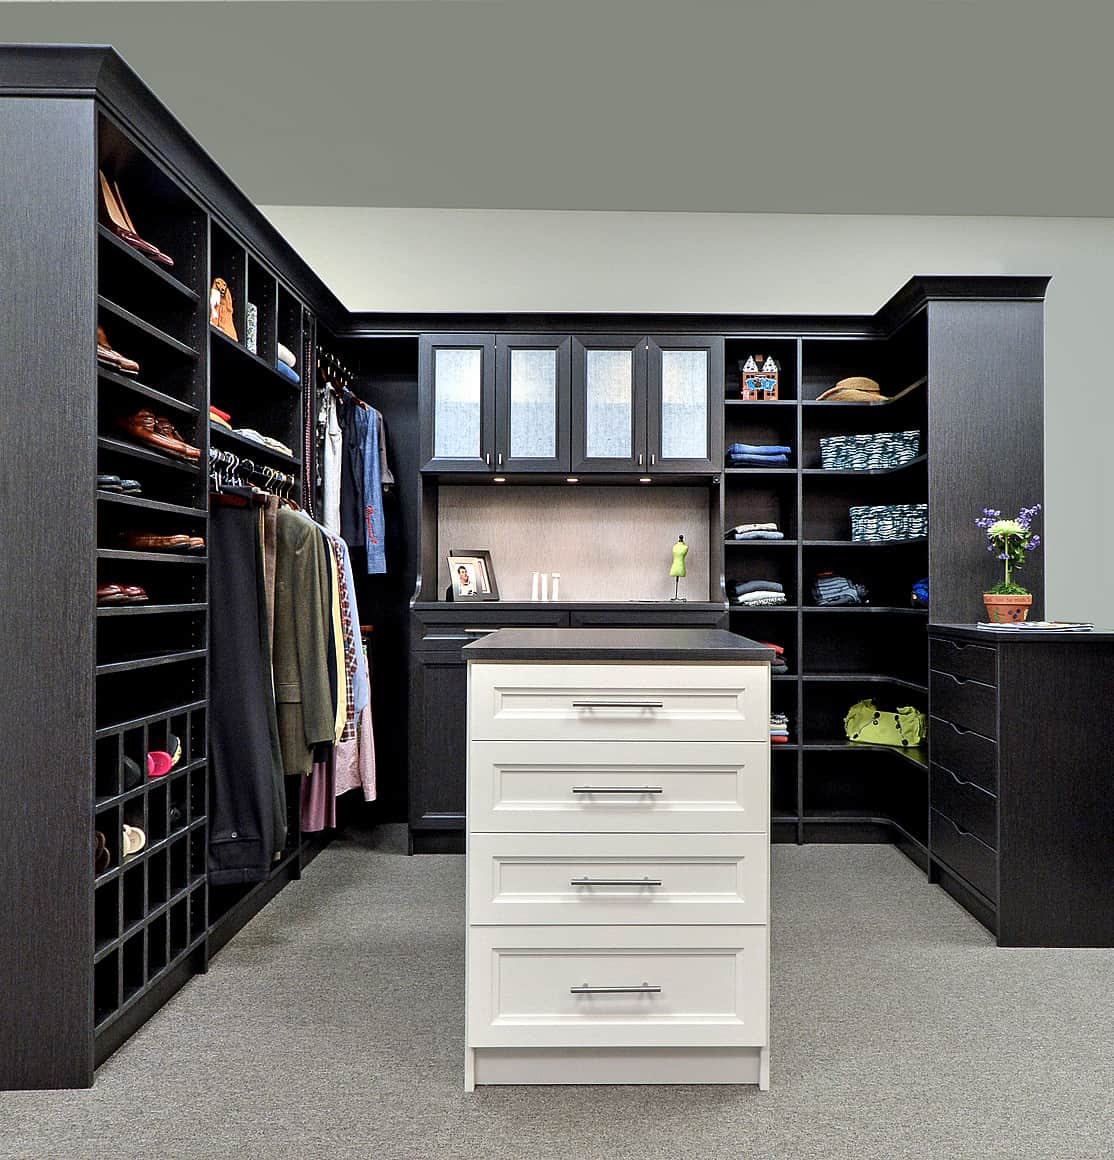 Men's bedroom closet featuring a white center island set on a carpet flooring. The island's countertop matches the beautiful cabinetry.